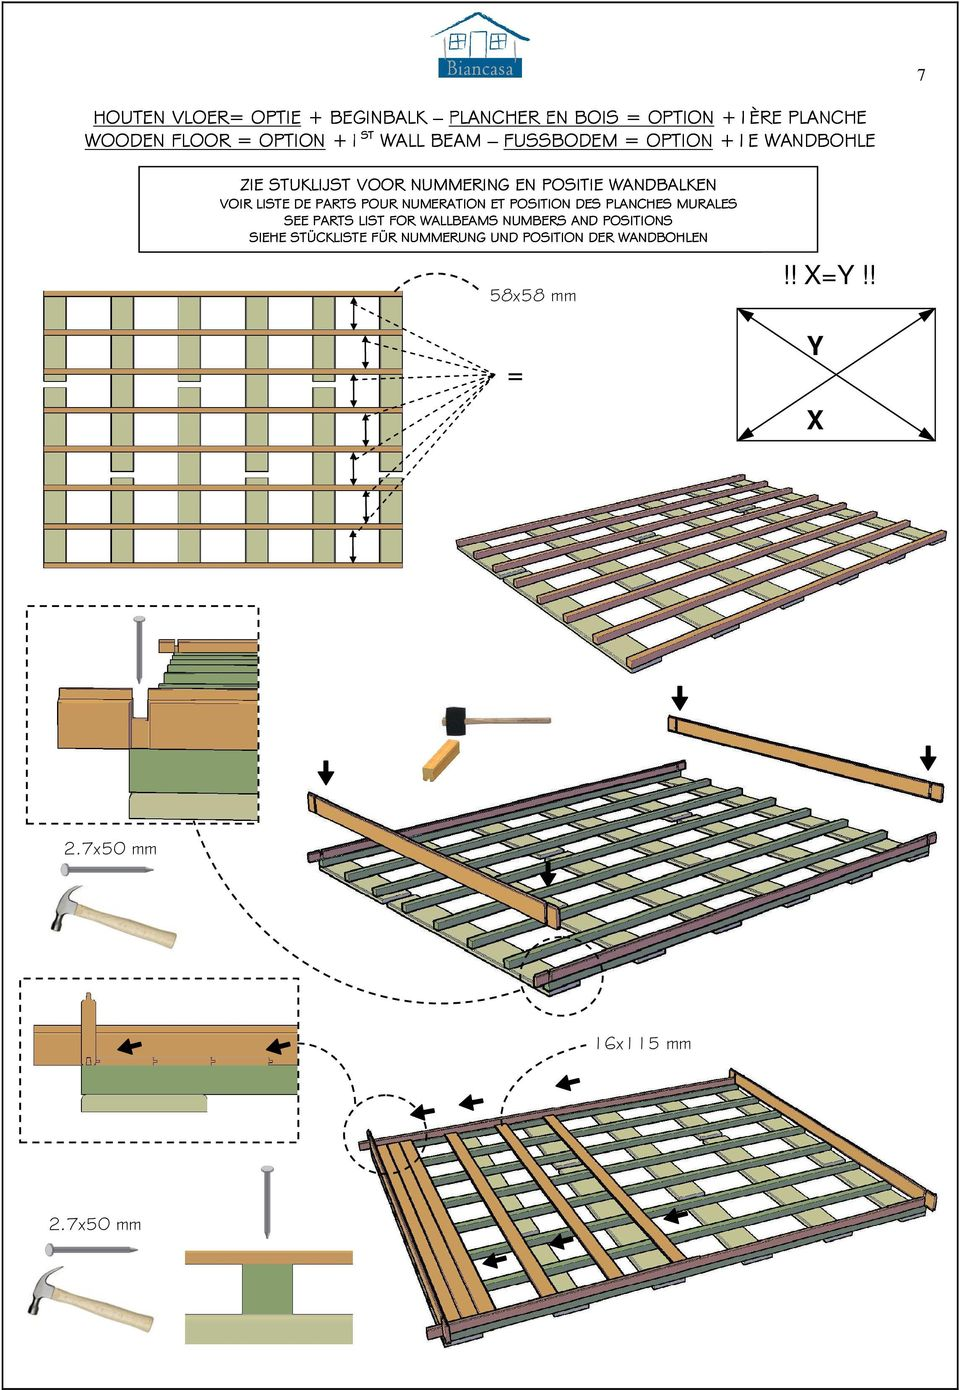 LISTE DE PARTS POUR NUMERATION ET POSITION DES PLANCHES MURALES SEE PARTS LIST FOR WALLBEAMS NUMBERS